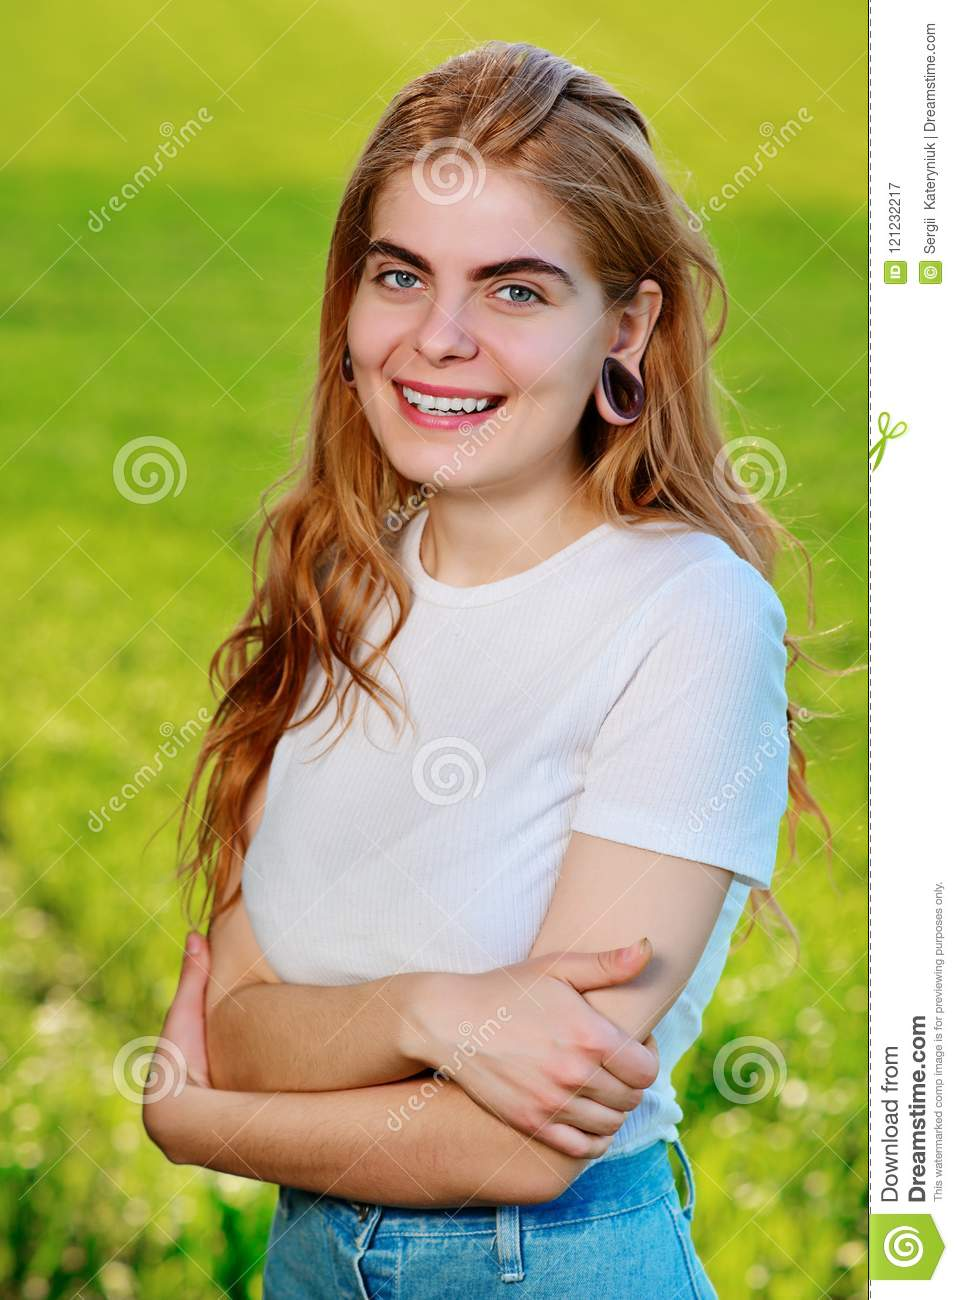 Portrait of a young beautiful woman with wooden tunnels in her ears